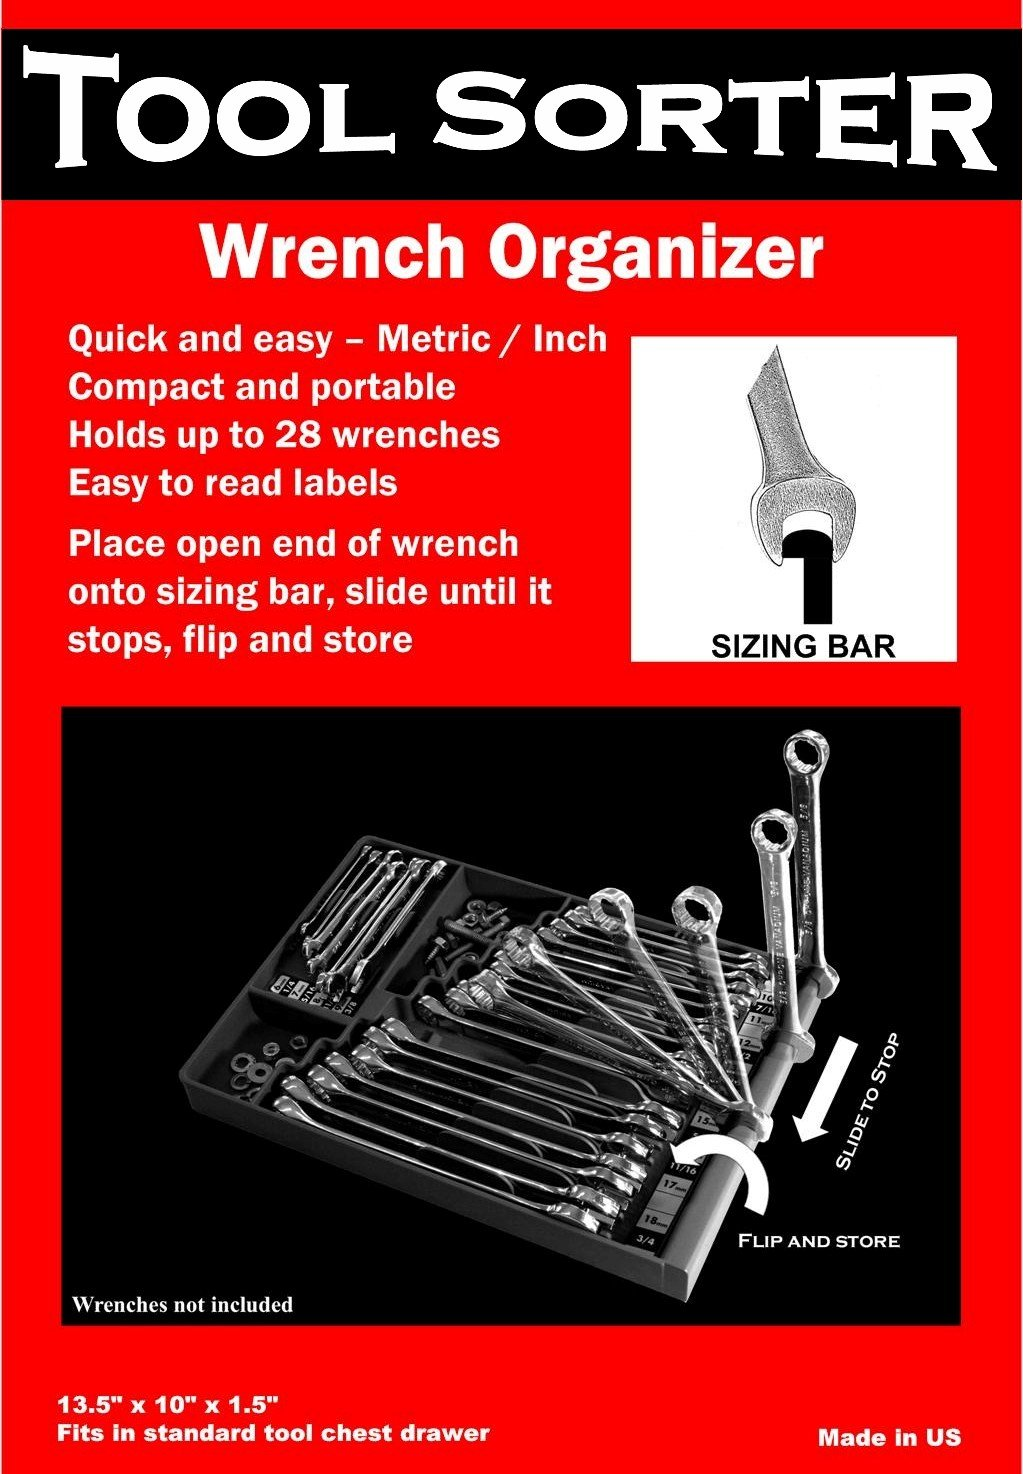 Tool Sorter Wrench Organizer - Red by Tool Sorter (Image #3)